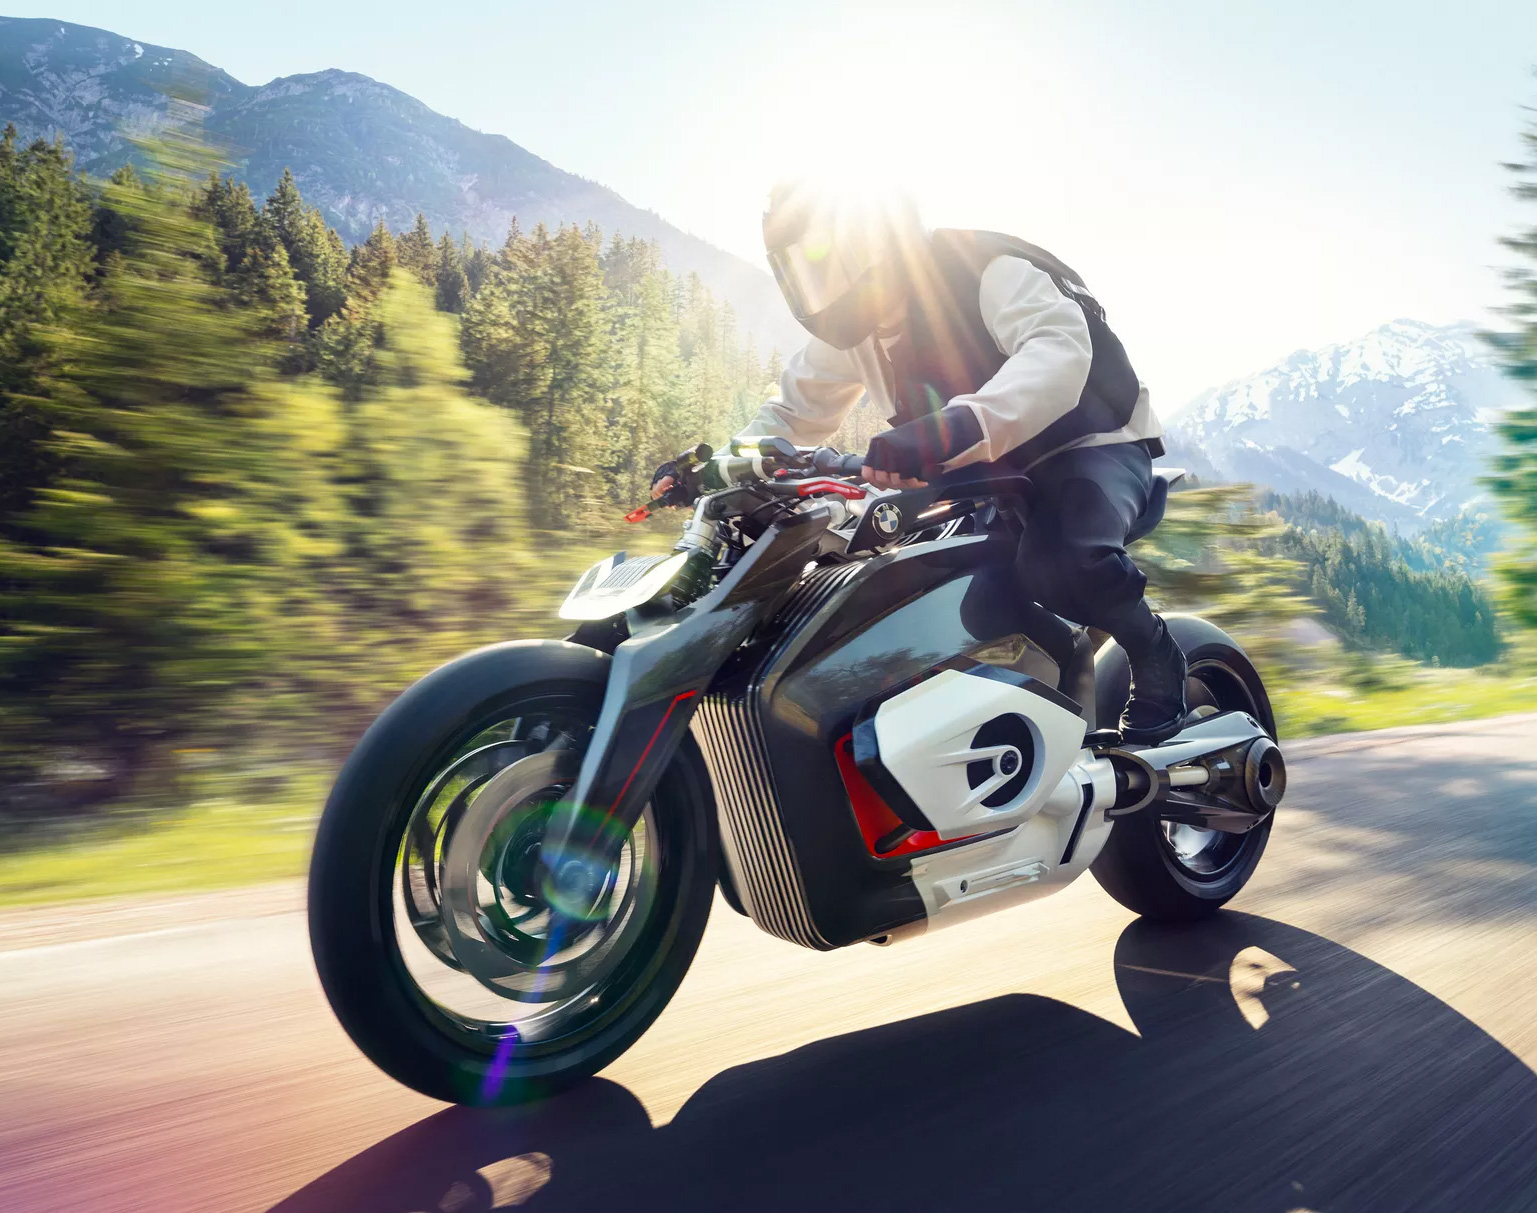 BMW Motorrad Unveils Electric Vision DC Roadster at werd.com